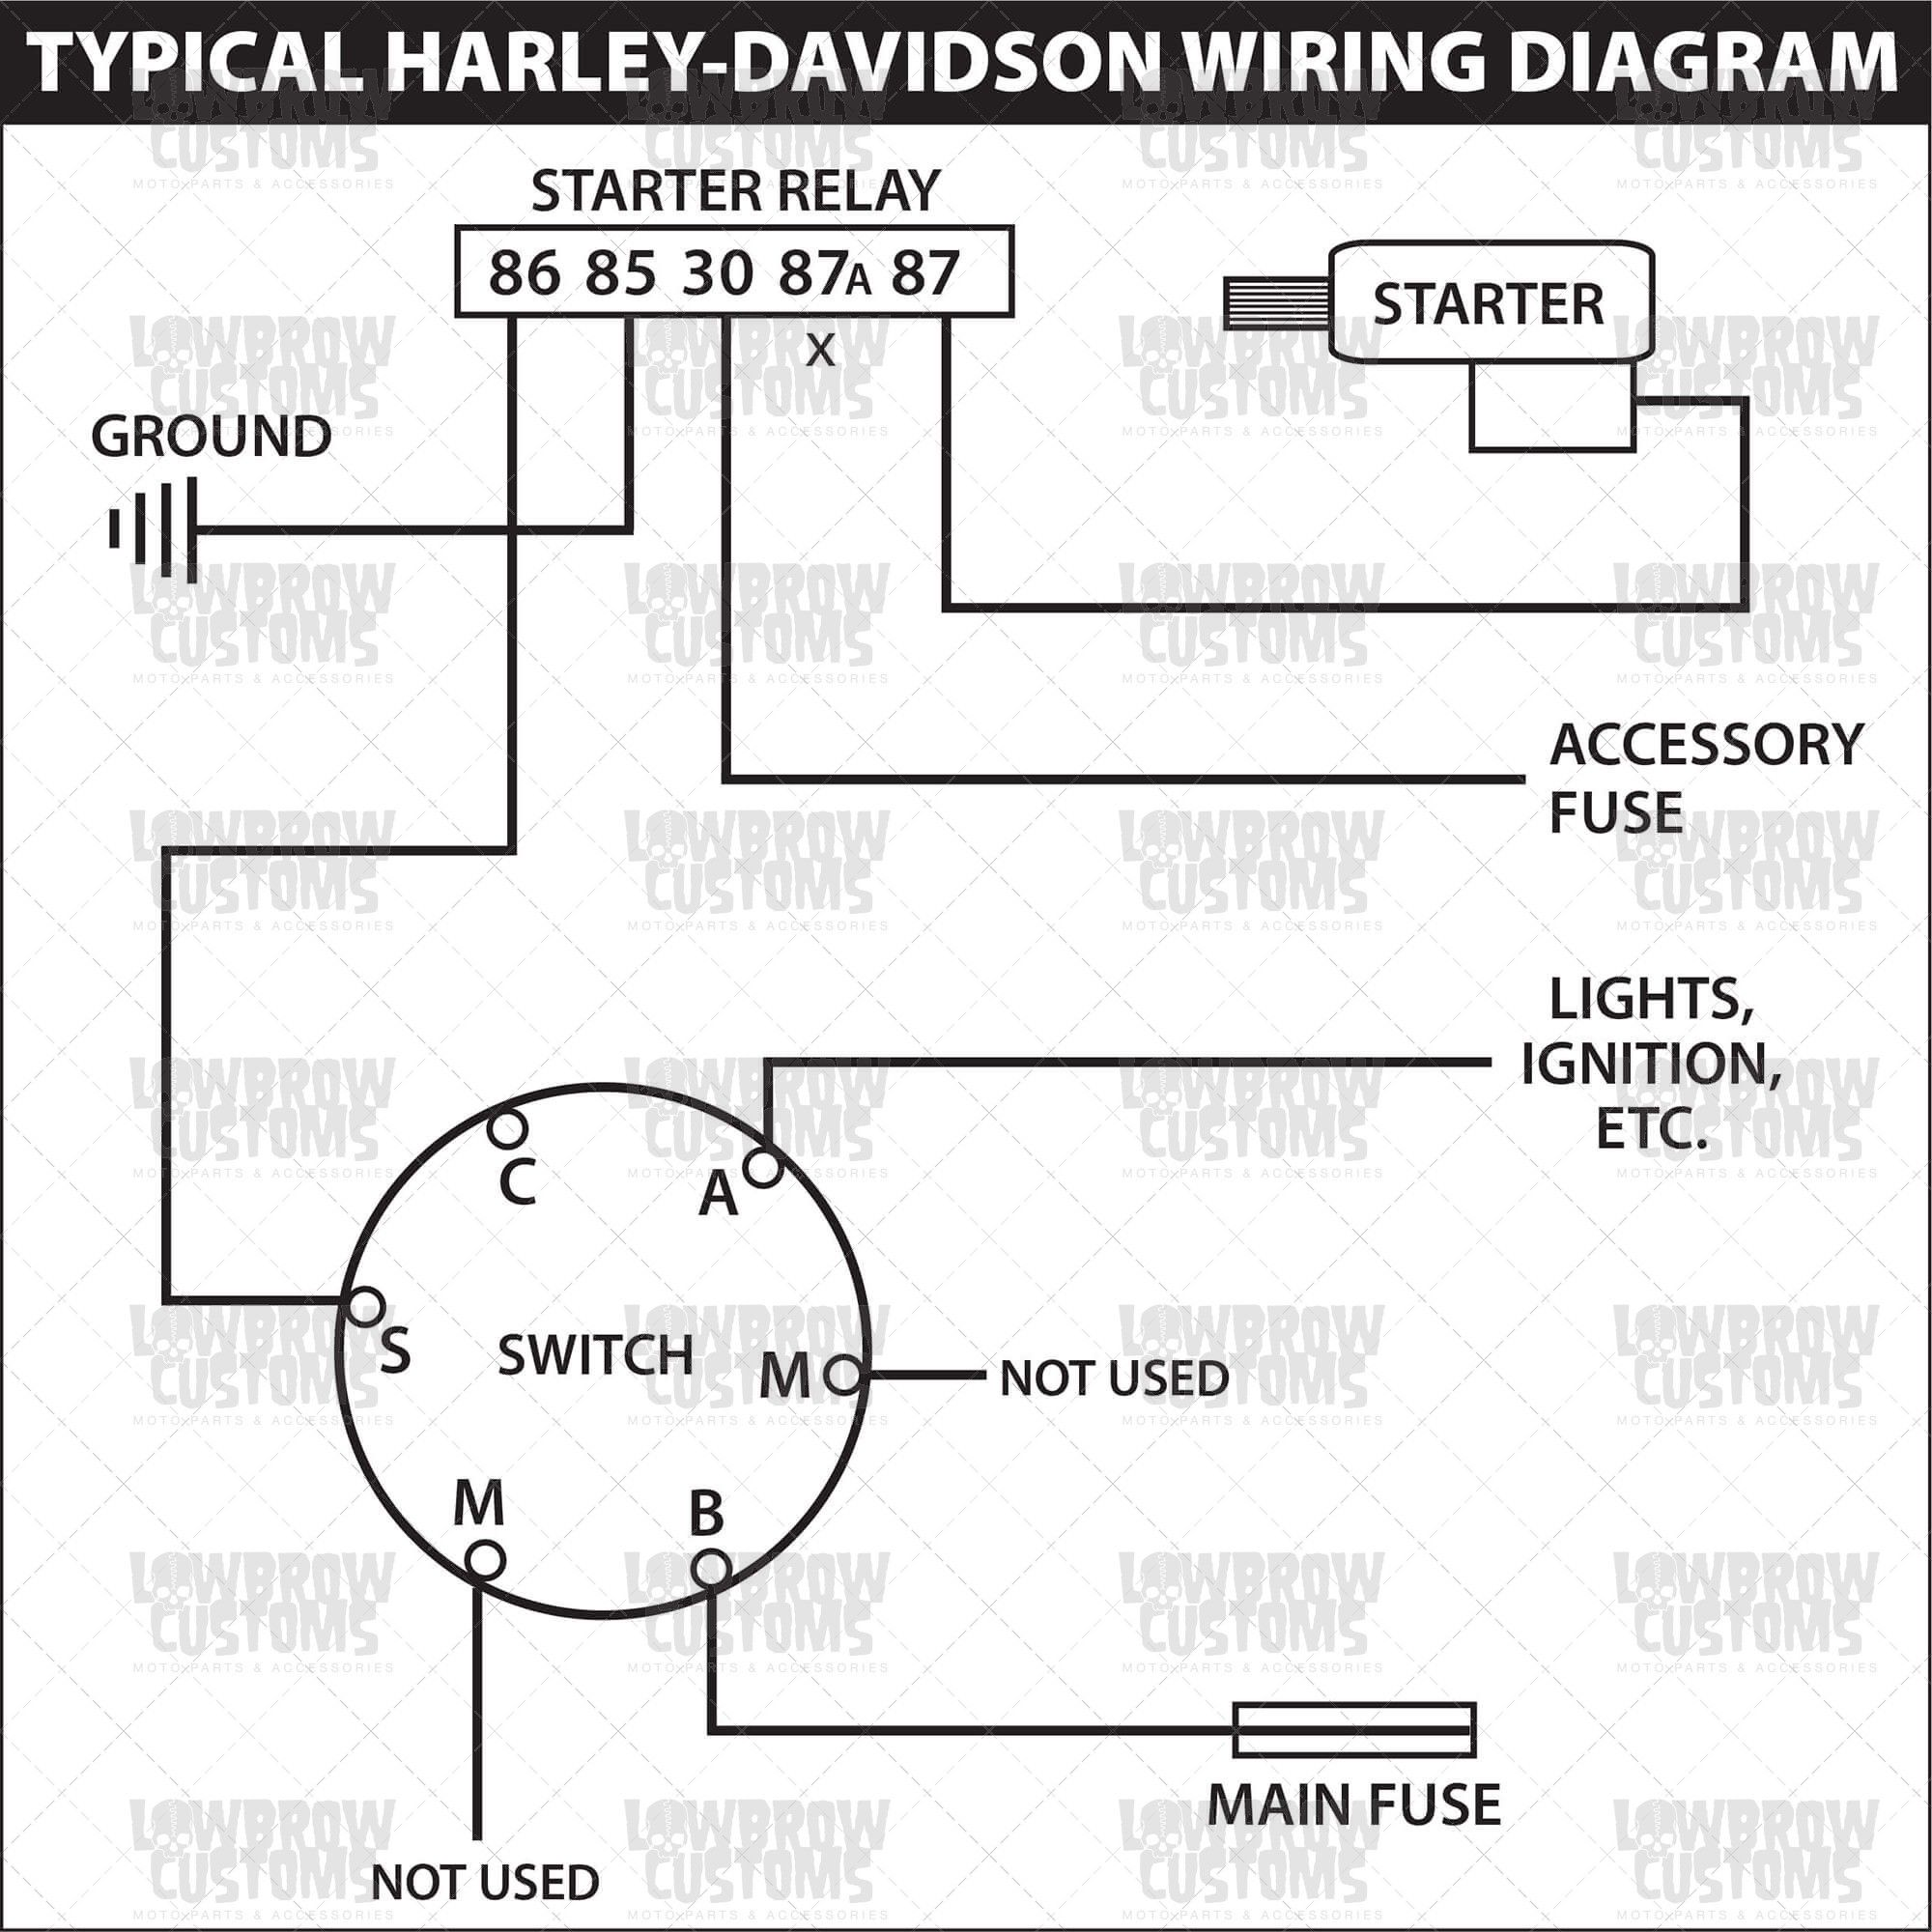 002732 Starter Switch Wiring Diagram Hd Motorcycle Ignition 0 1 Electrical Wiring Diagram Diagram Electrical Diagram